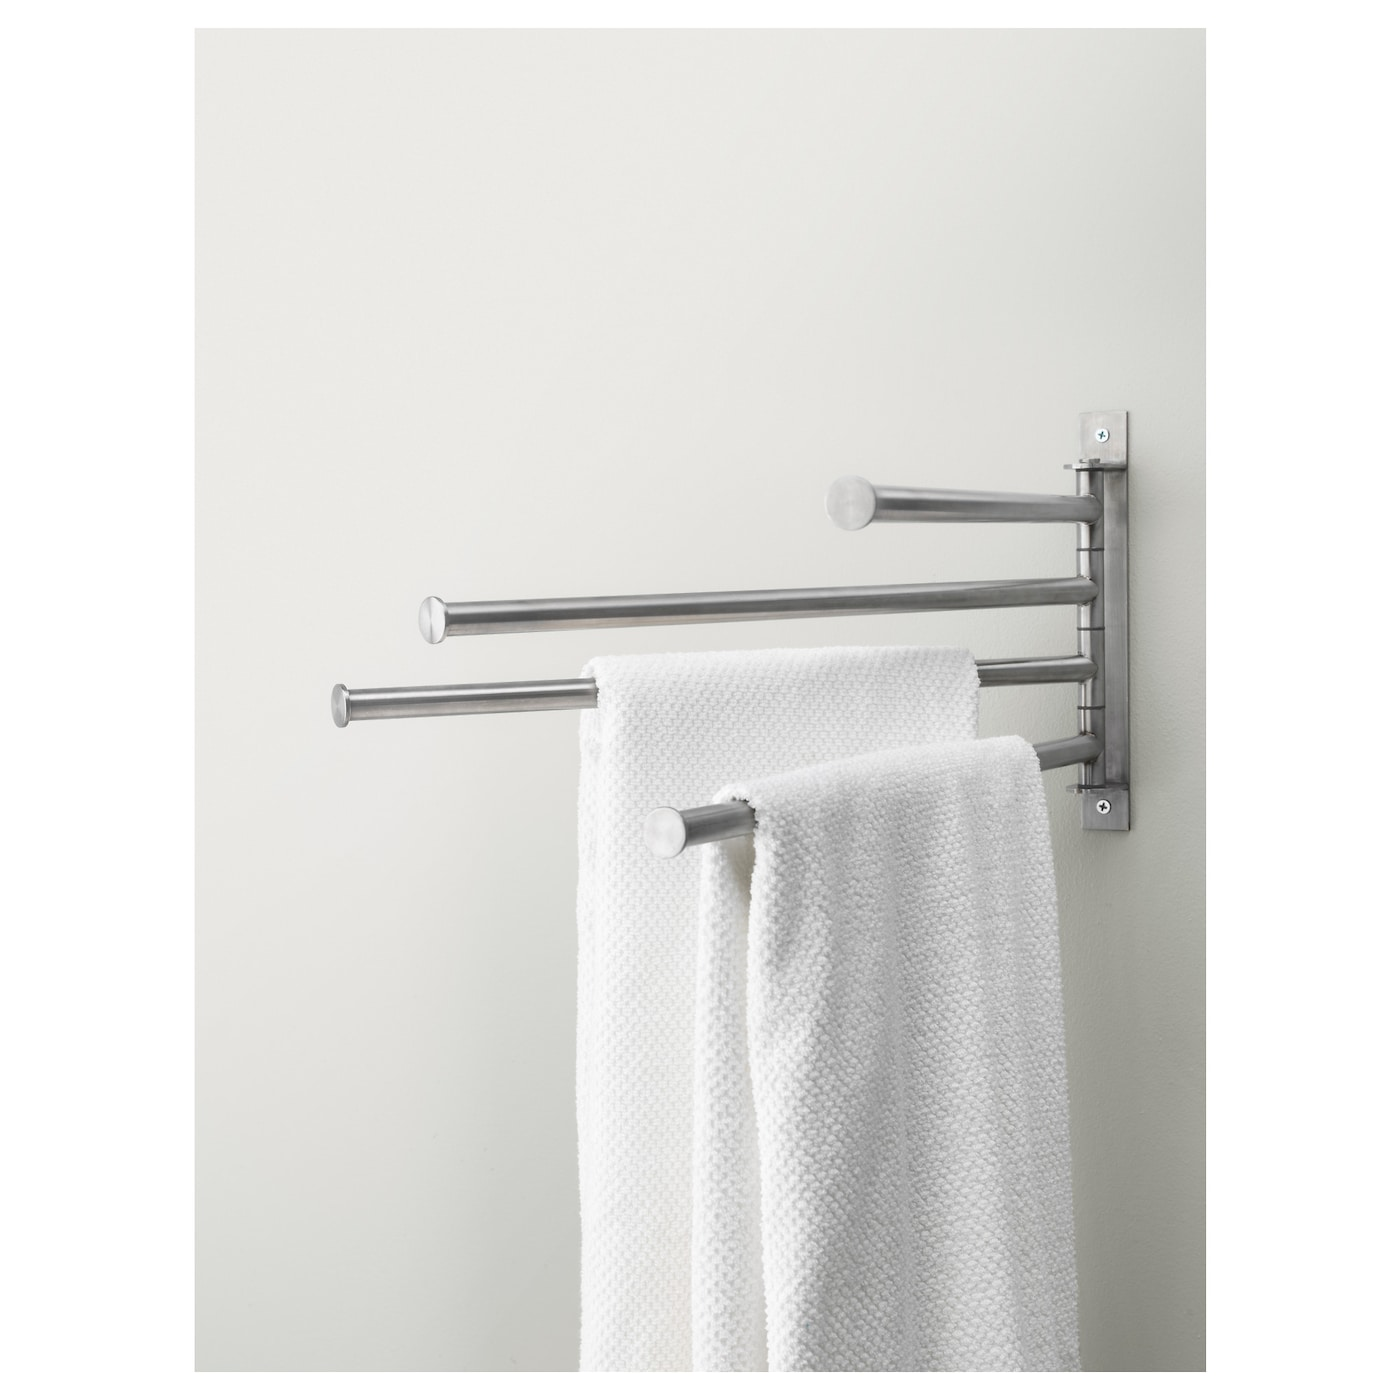 grundtal towel holder 4 bars stainless steel ikea. Black Bedroom Furniture Sets. Home Design Ideas